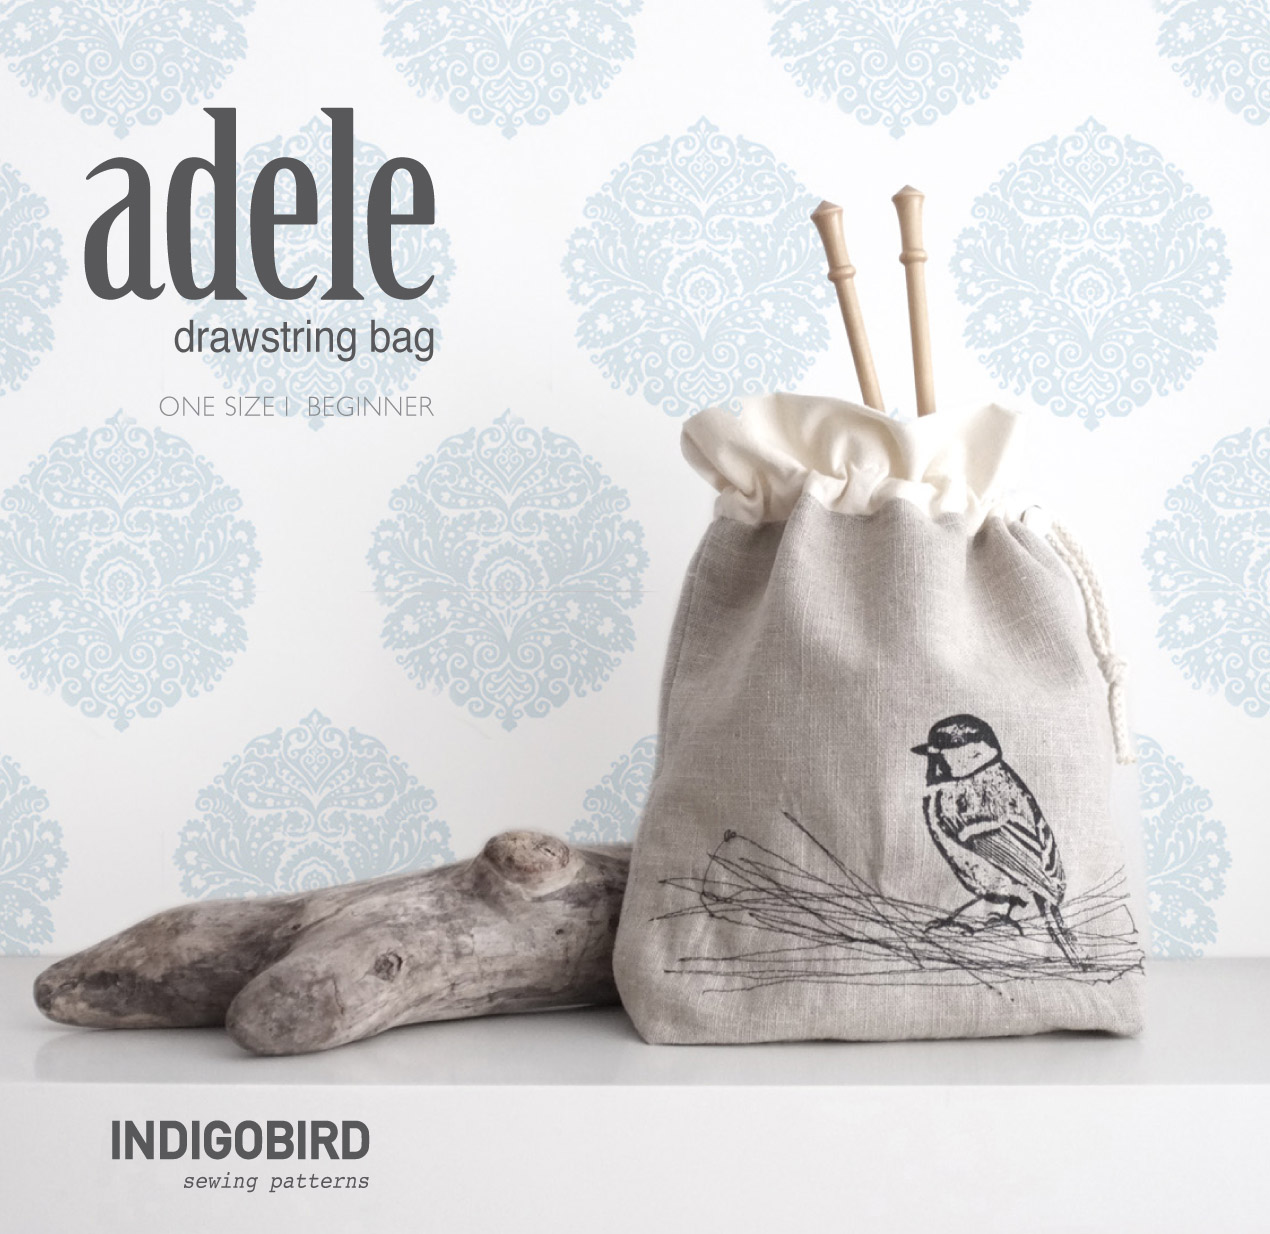 Adele Drawstring Bag Pattern